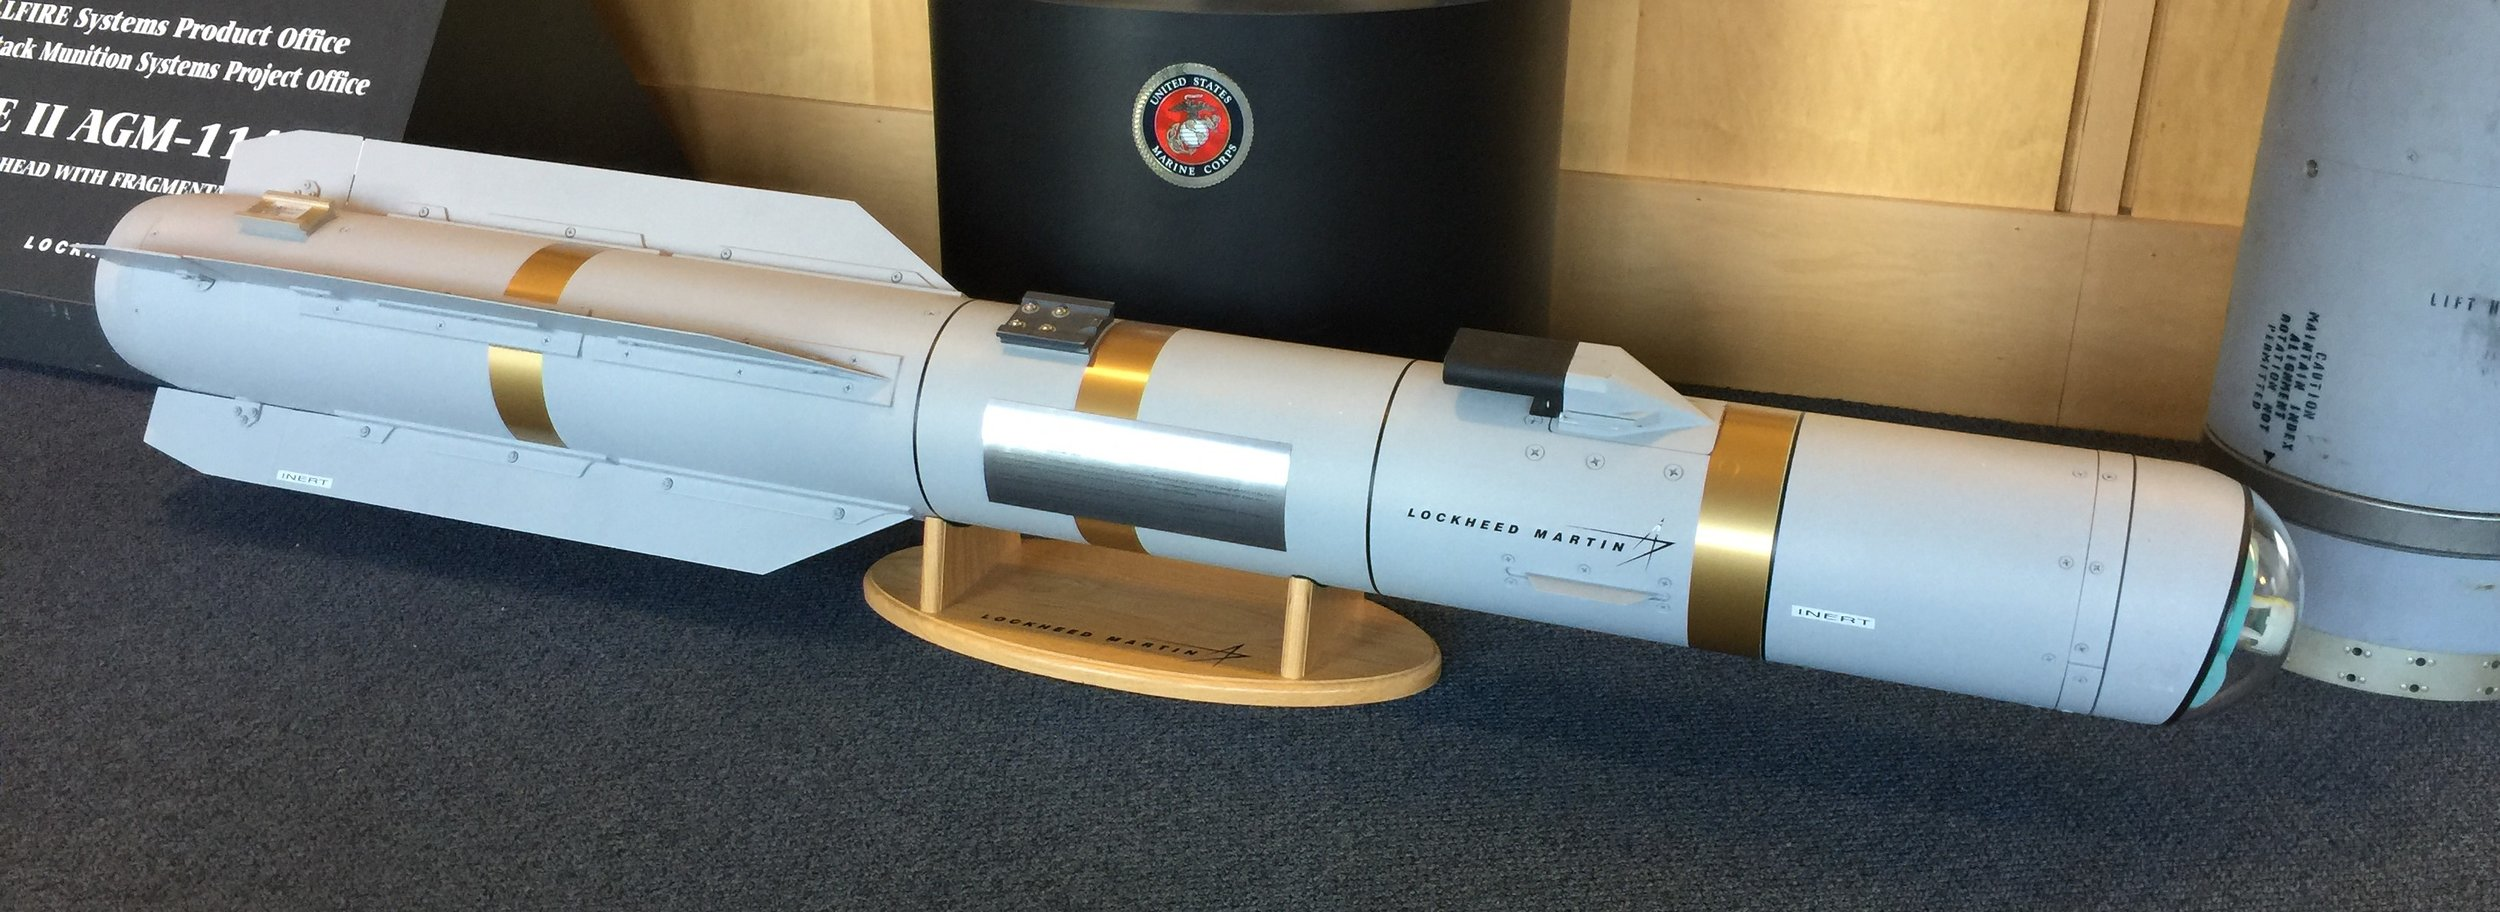 JAGM Missile Manufactured by @LockheedMartin